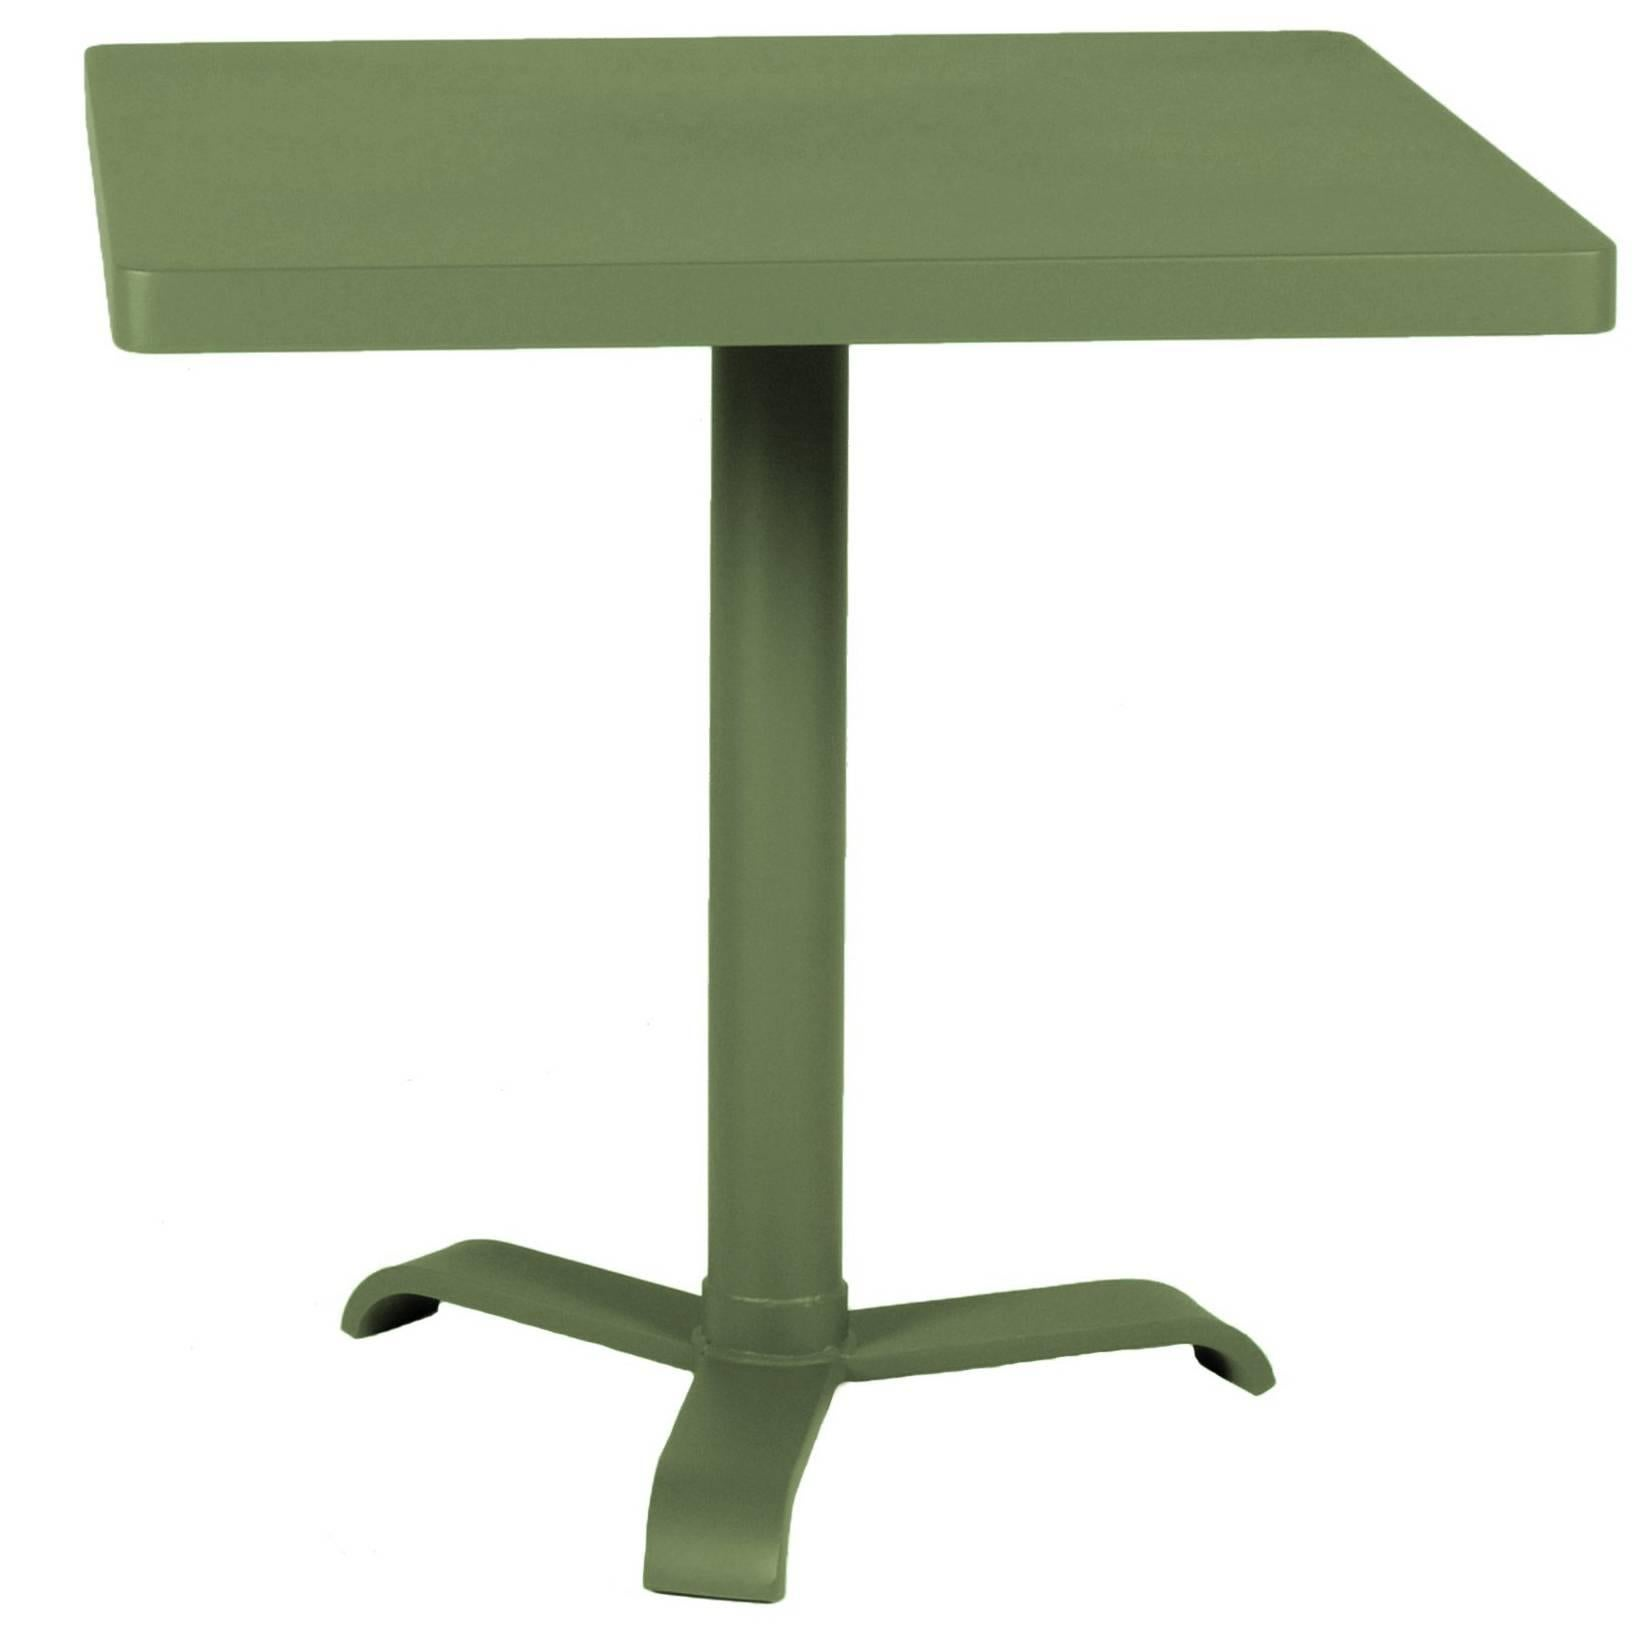 77 Square Pedestal Table In Rosemary Green By Tolix For Sale